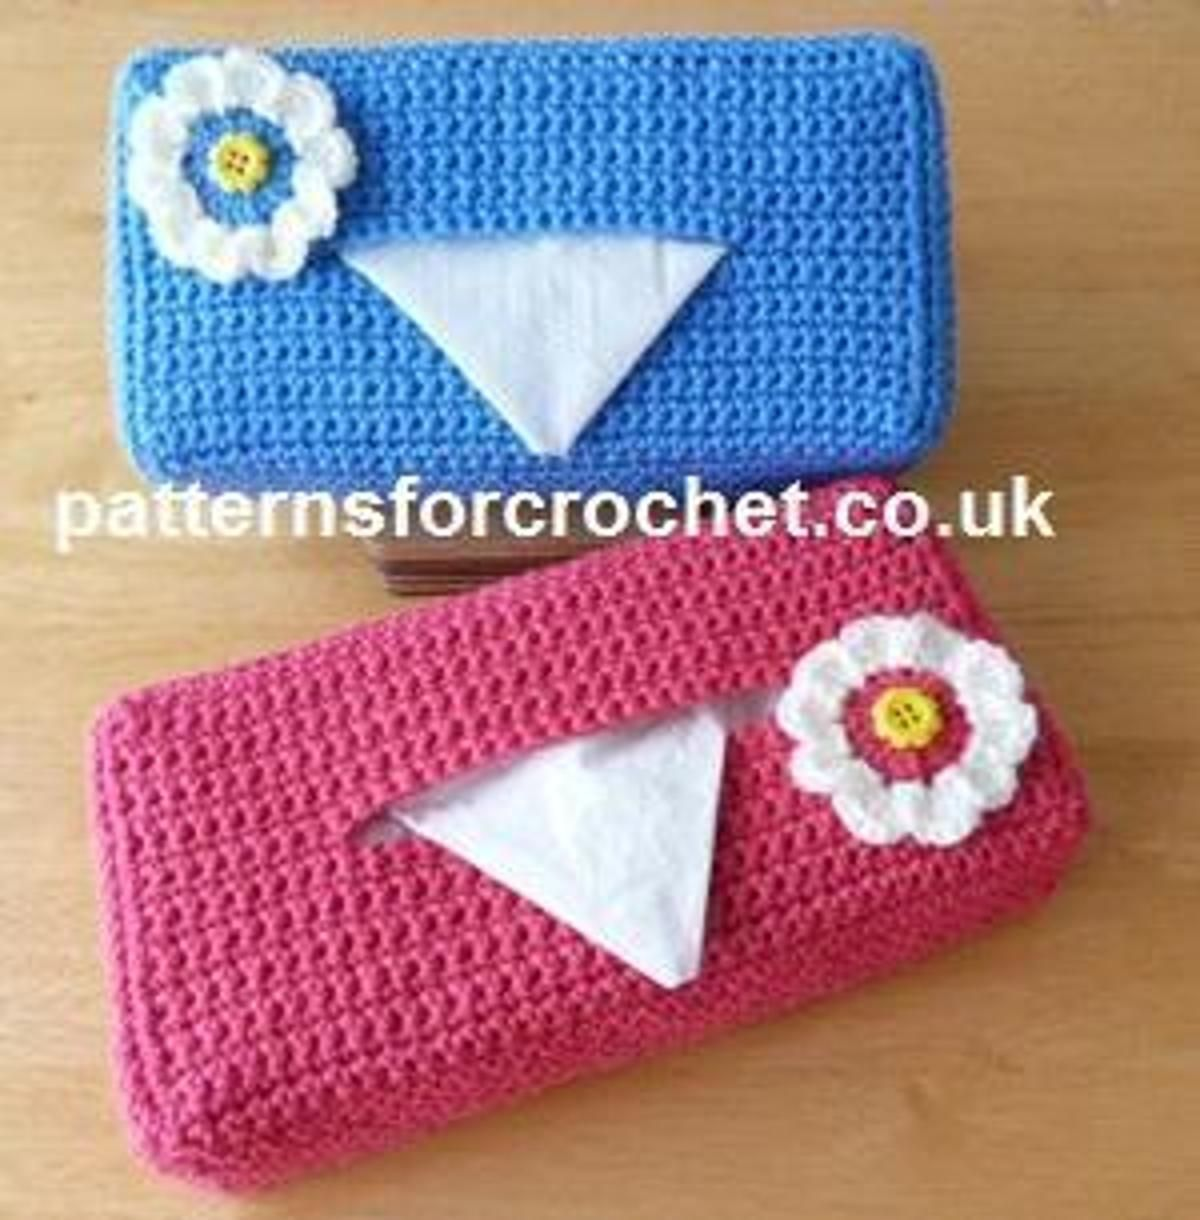 pfc228-Tissue Box Cover crochet pattern | Craftsy | crochet ...